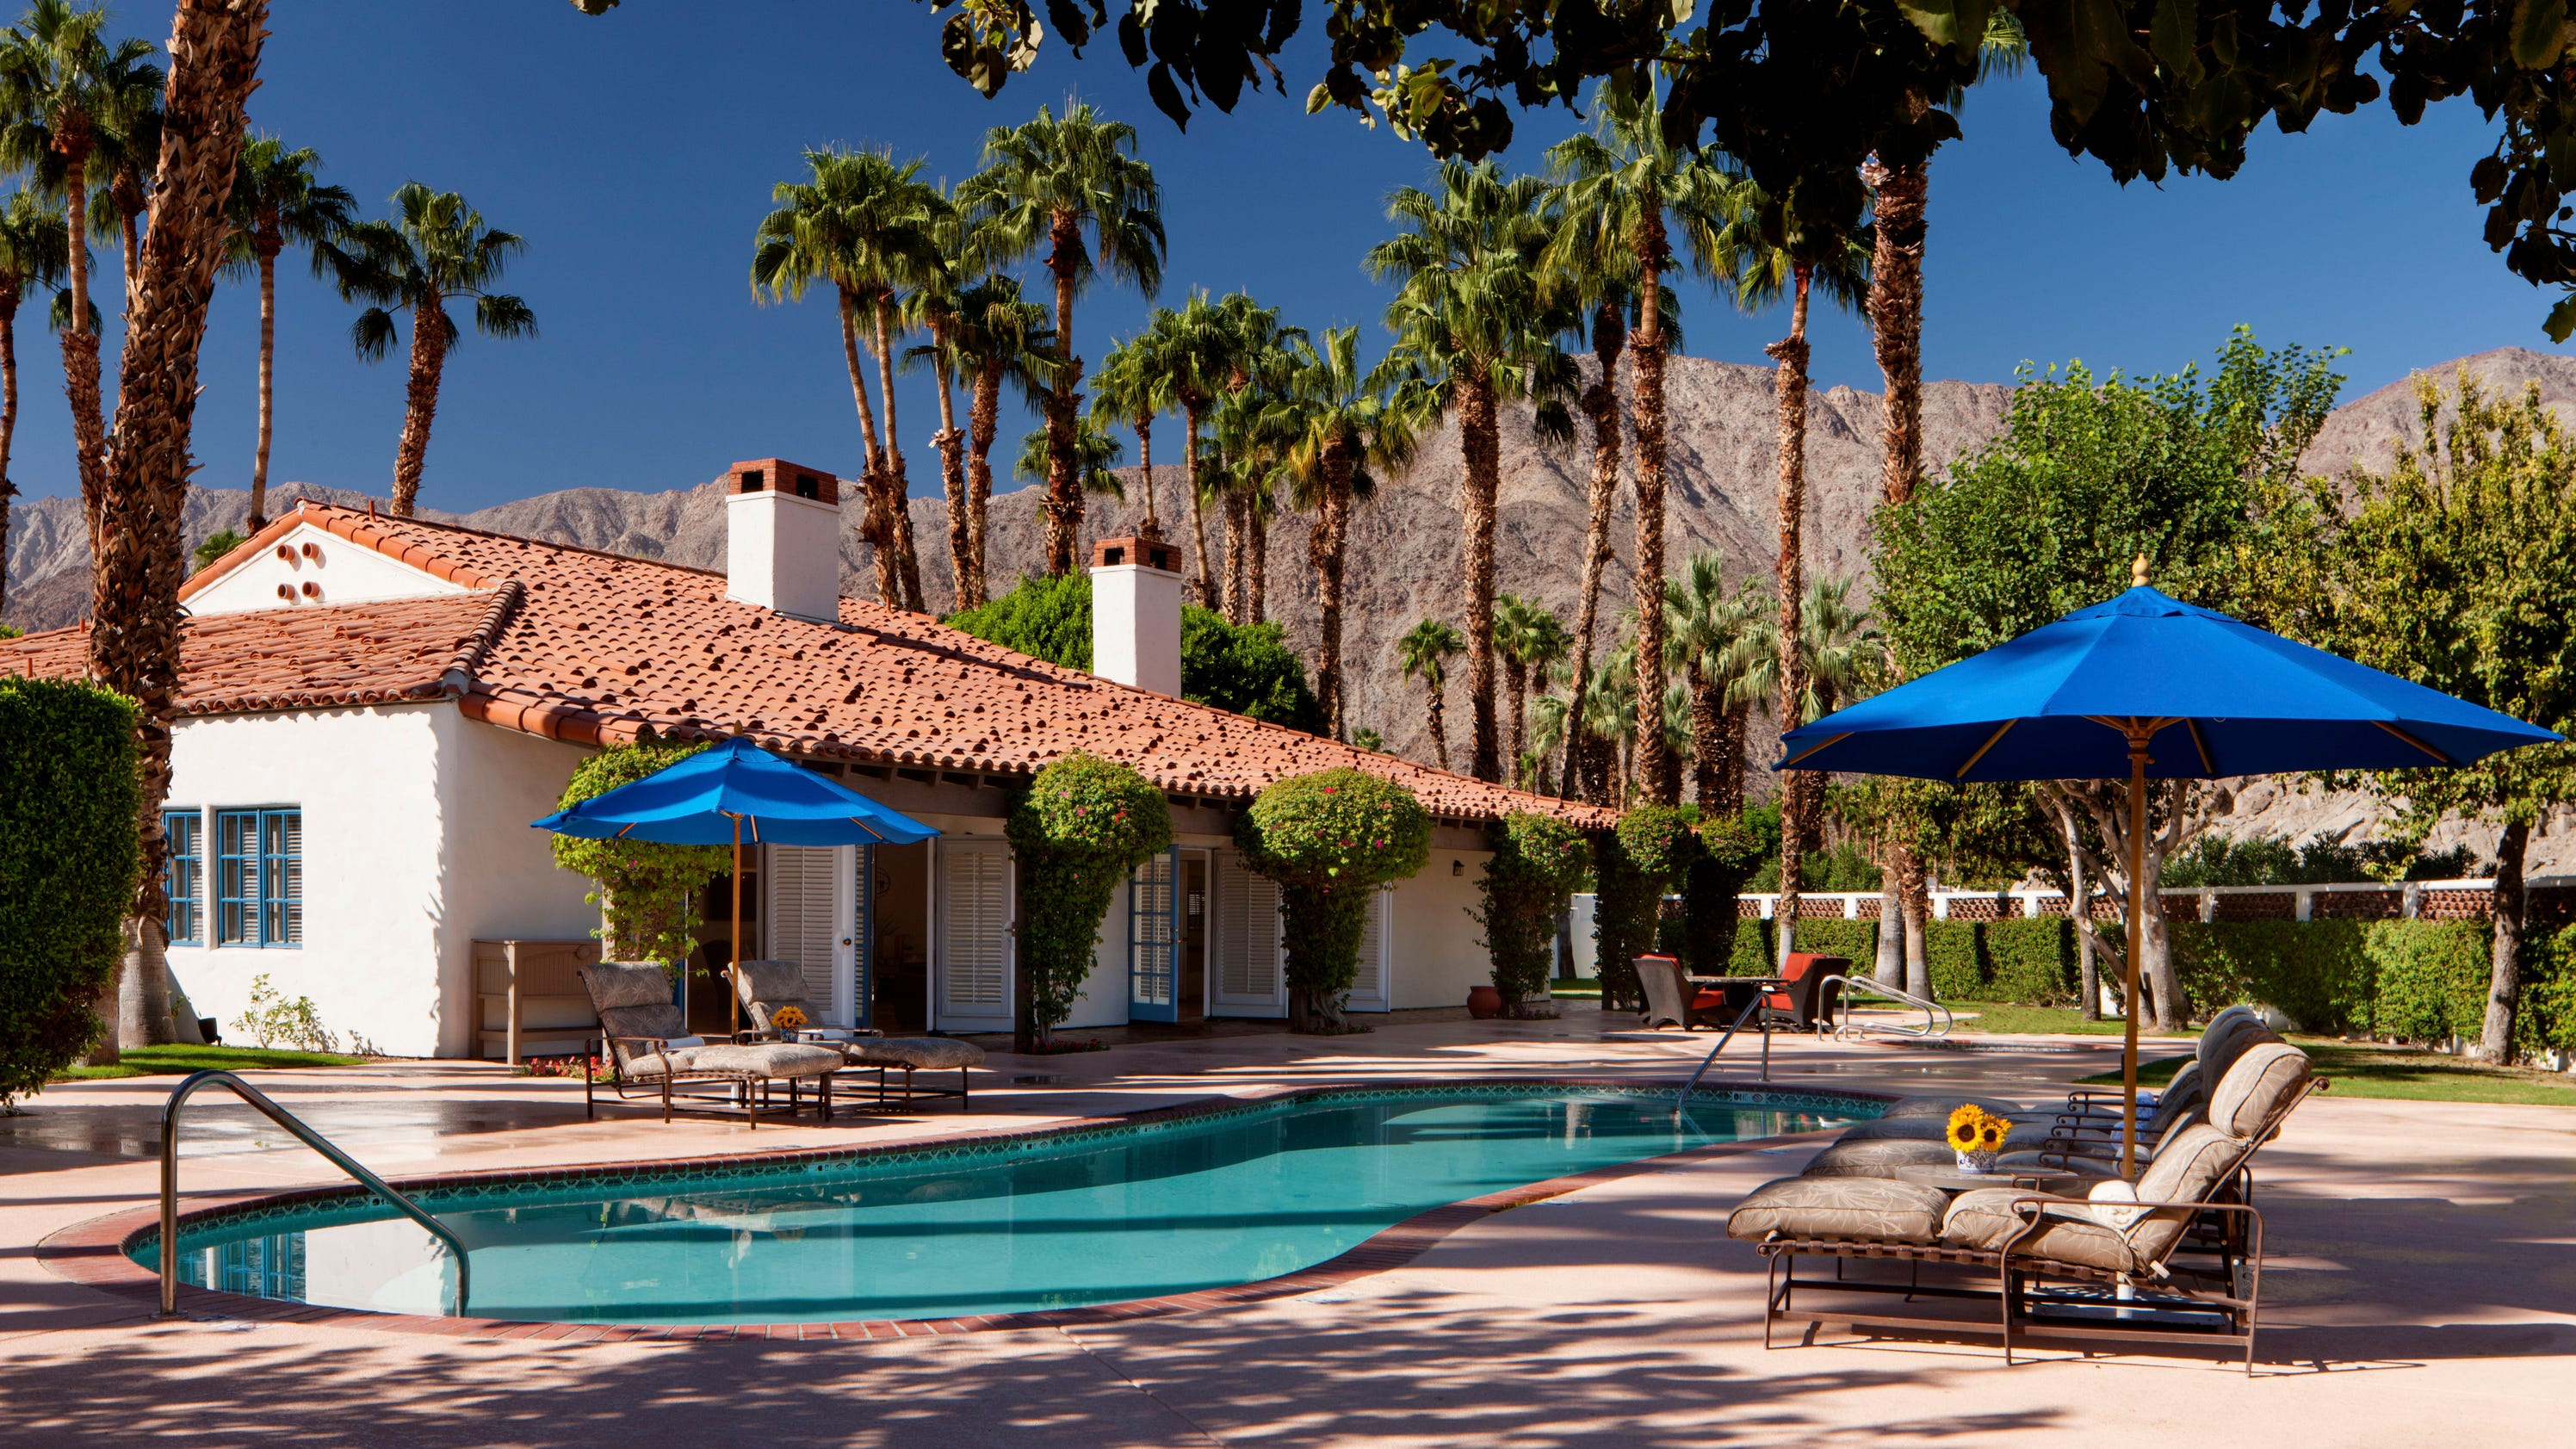 La Quinta Resort  Club featured in Harpers Bazaar